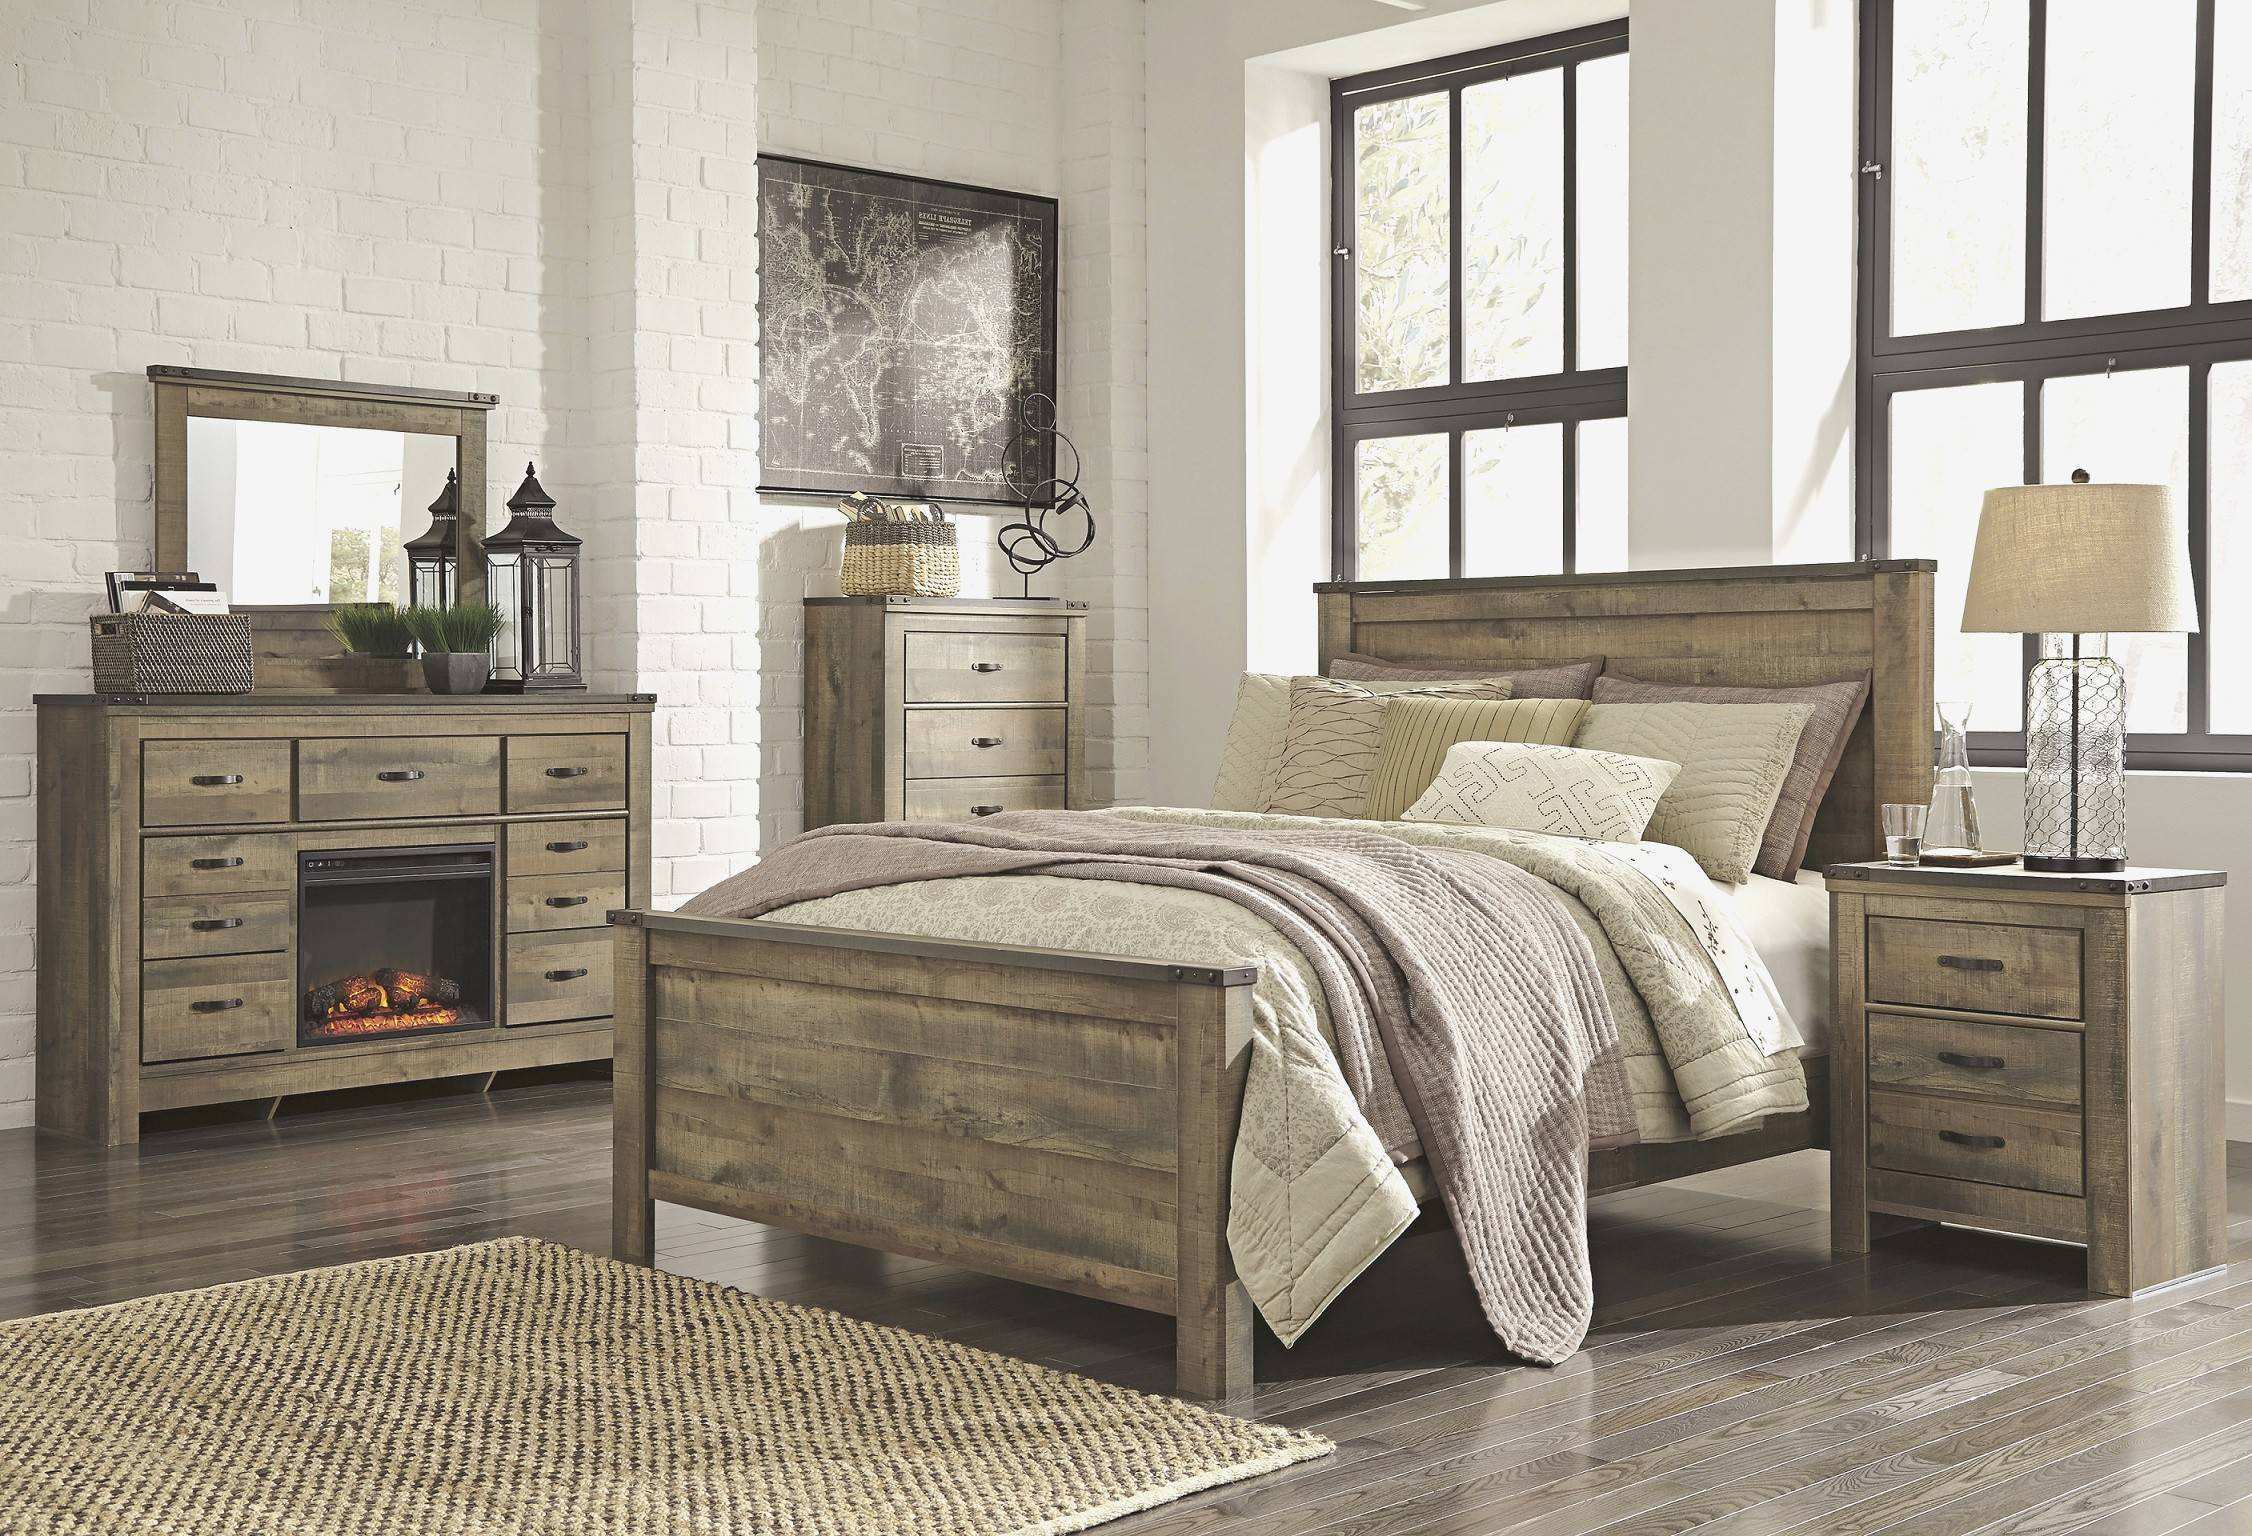 Sears Platform Bed Elegant Bedroom Contemporary Make Furniture Ideas Frame Frames And Headboards Modern Beds King With Storage Twin Day Apppie Org